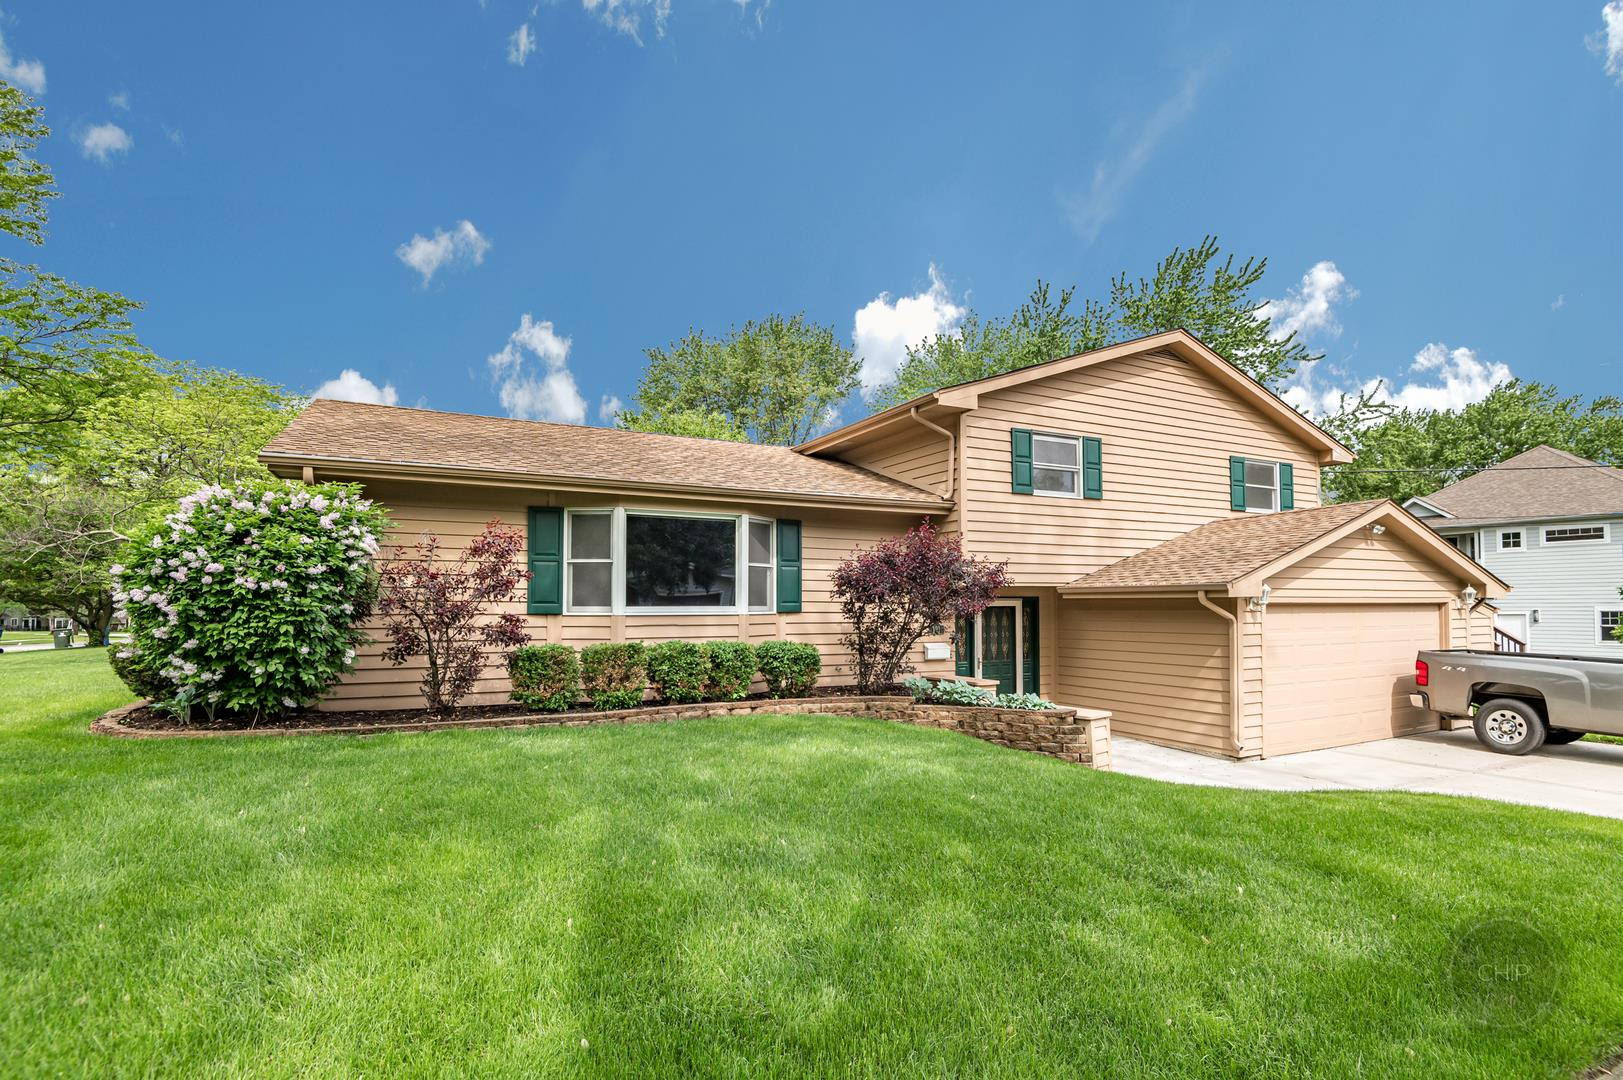 121 George Lane, Naperville, IL 60540 - #: 10674423